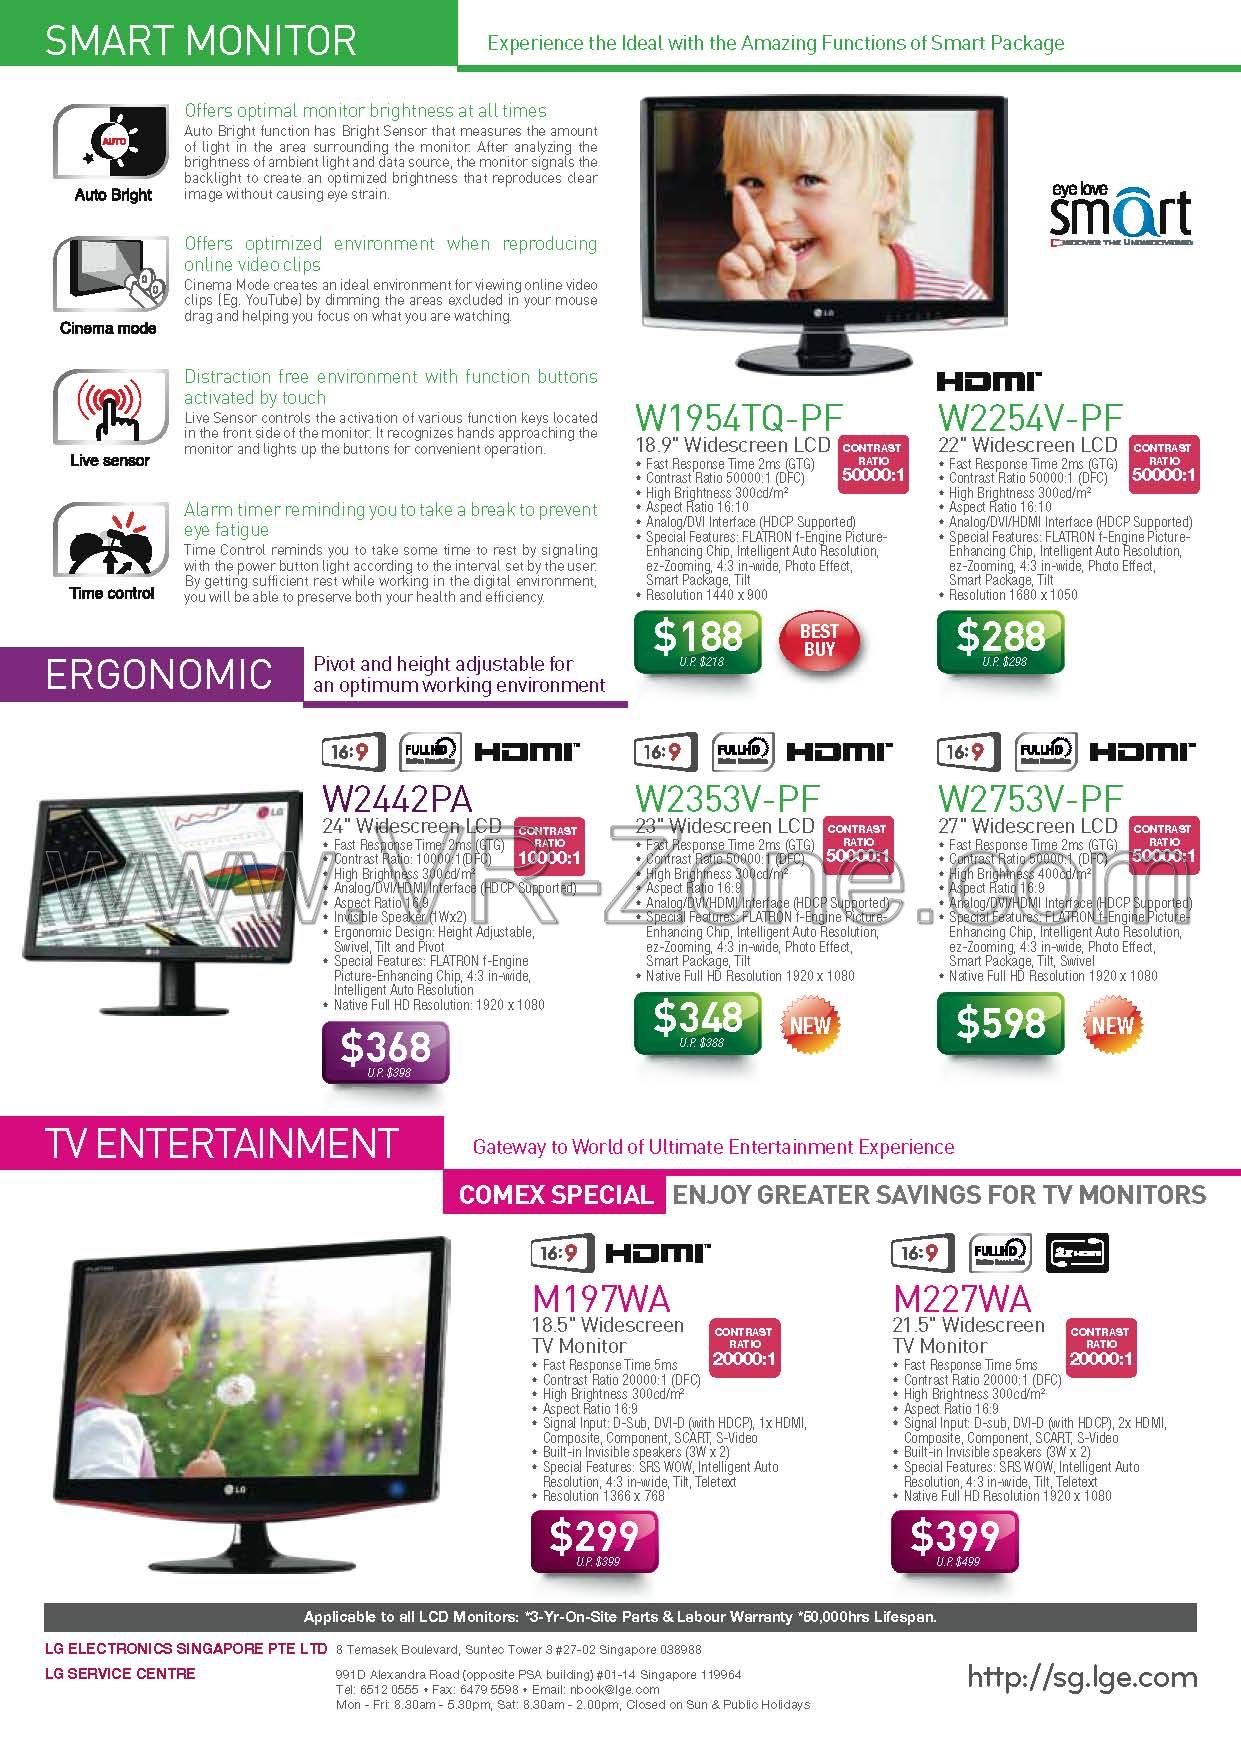 Comex 2009 price list image brochure of LG LCD Monitors TV W9154TQ W2254V W2442PA W2353V W2753V M197WA M22WA